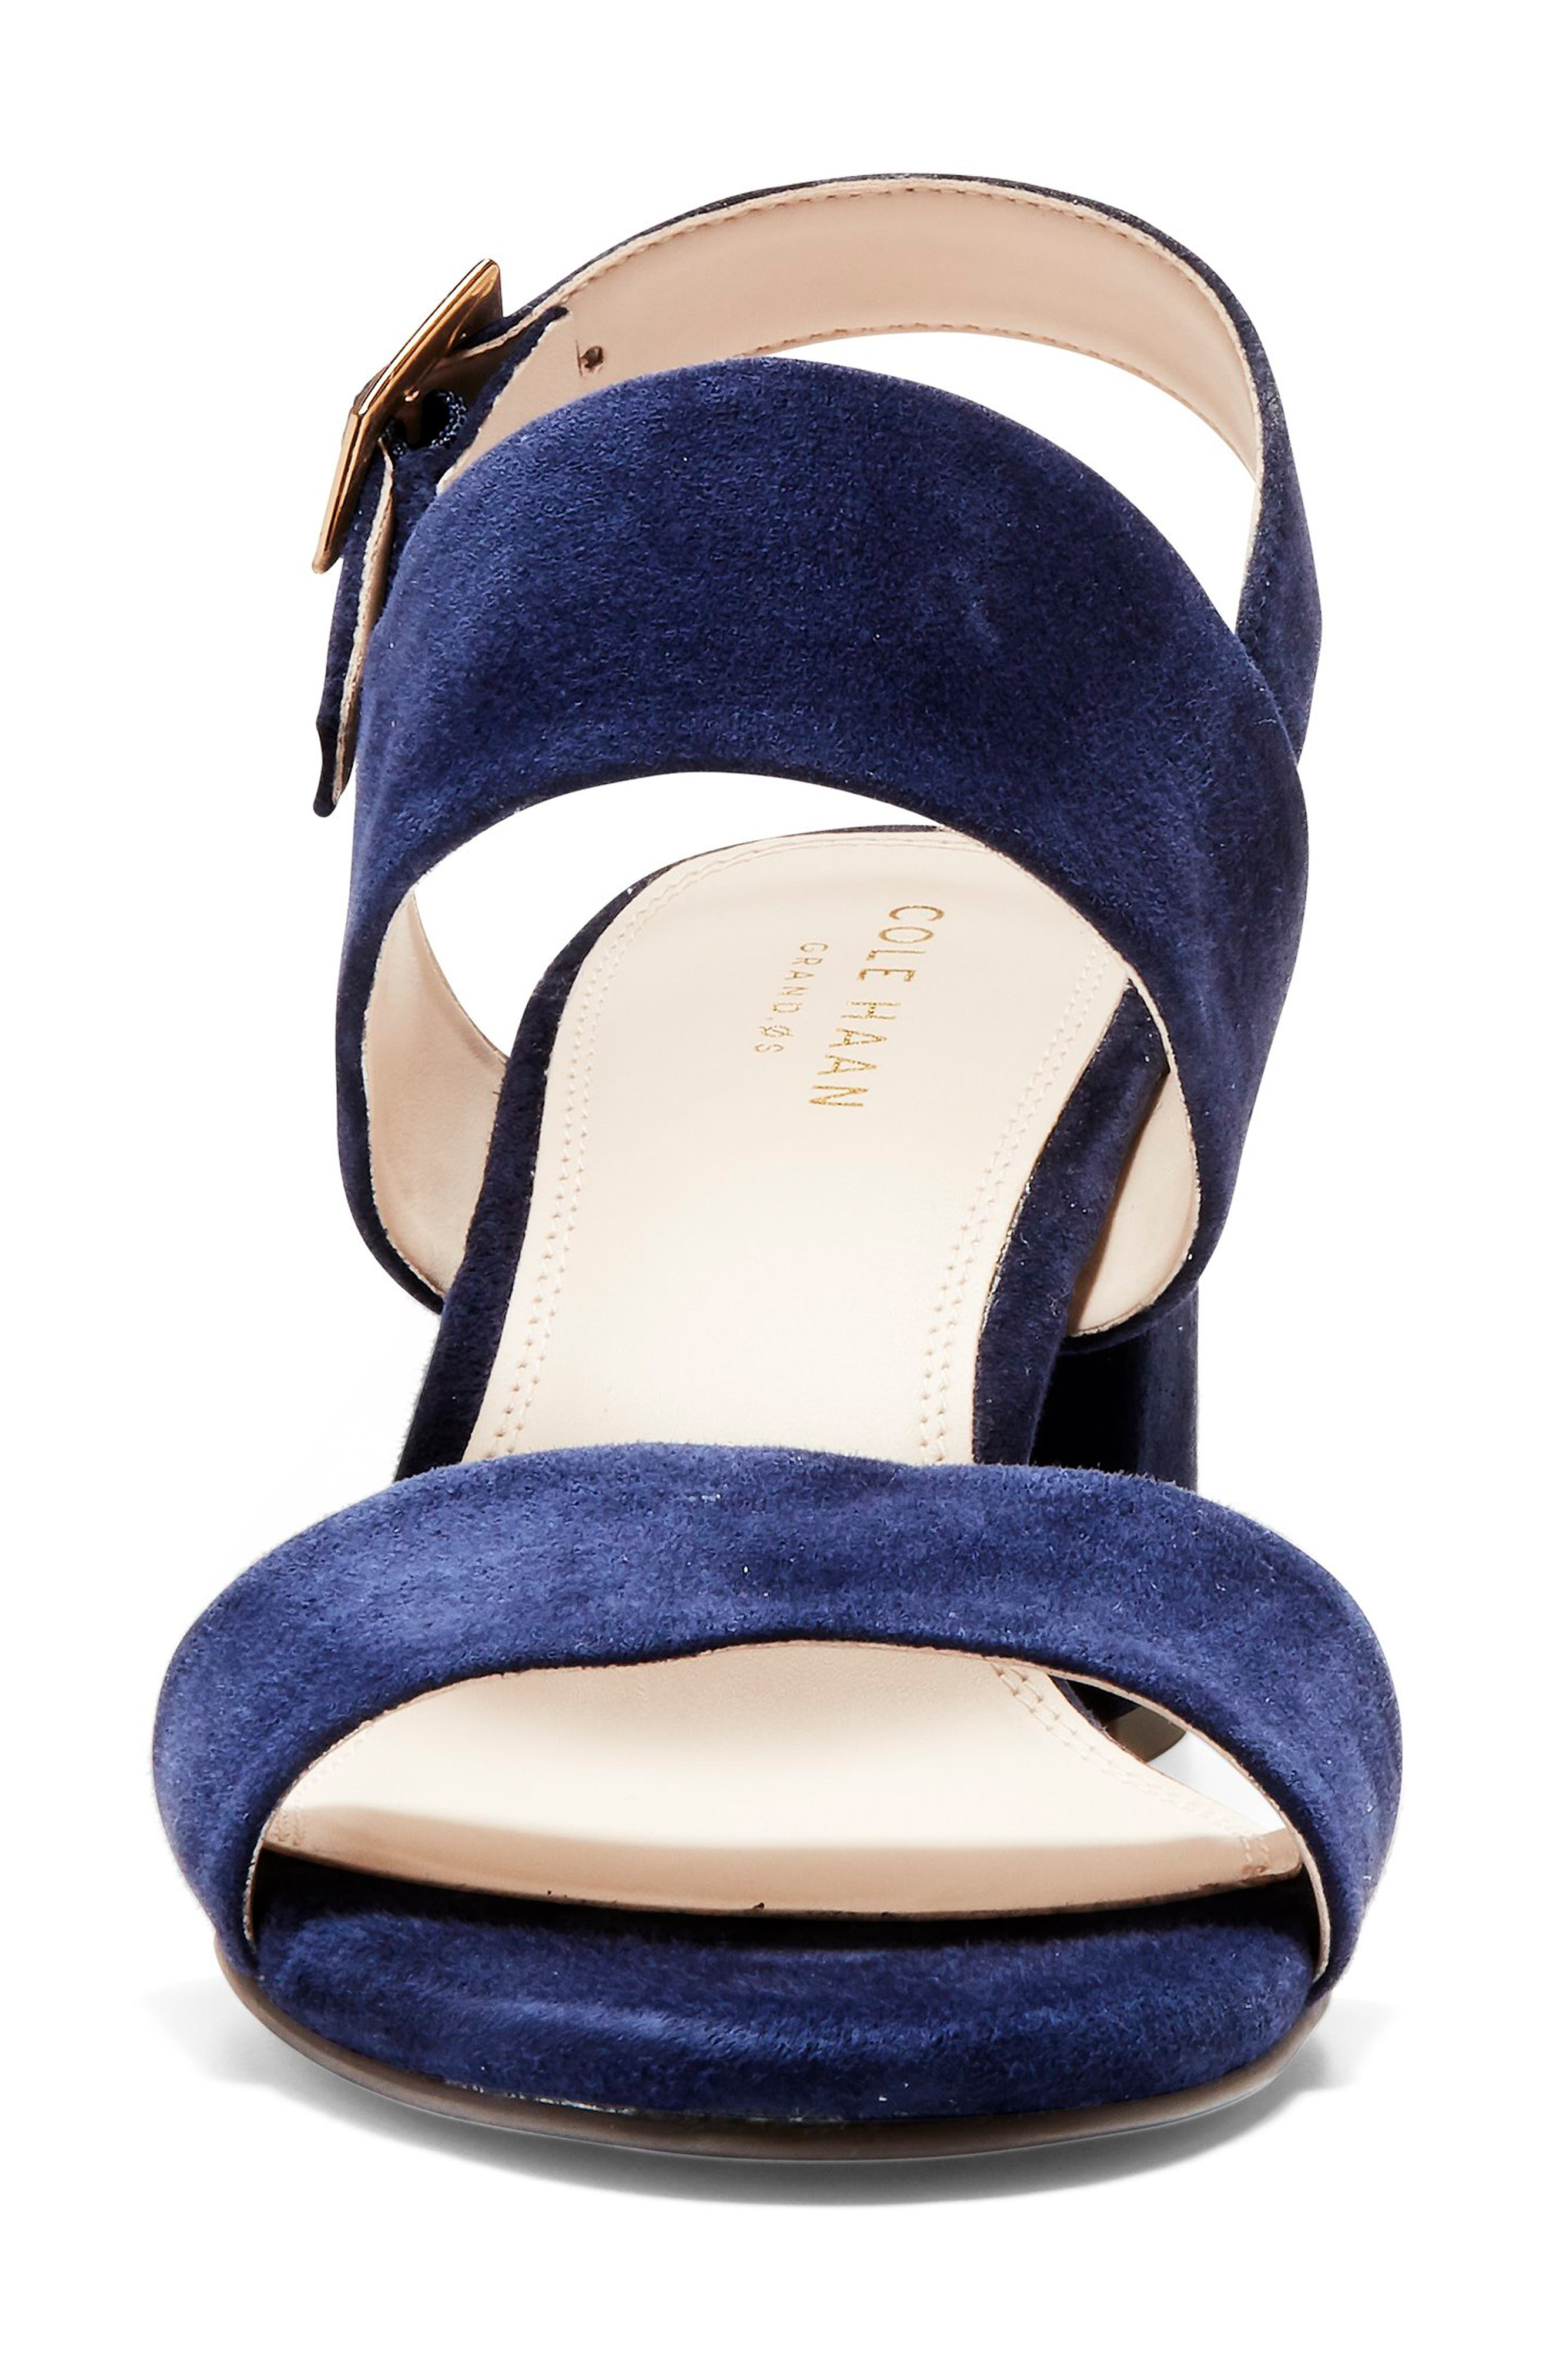 Avani Block Heel Sandal,                             Alternate thumbnail 4, color,                             MARINE BLUE SUEDE